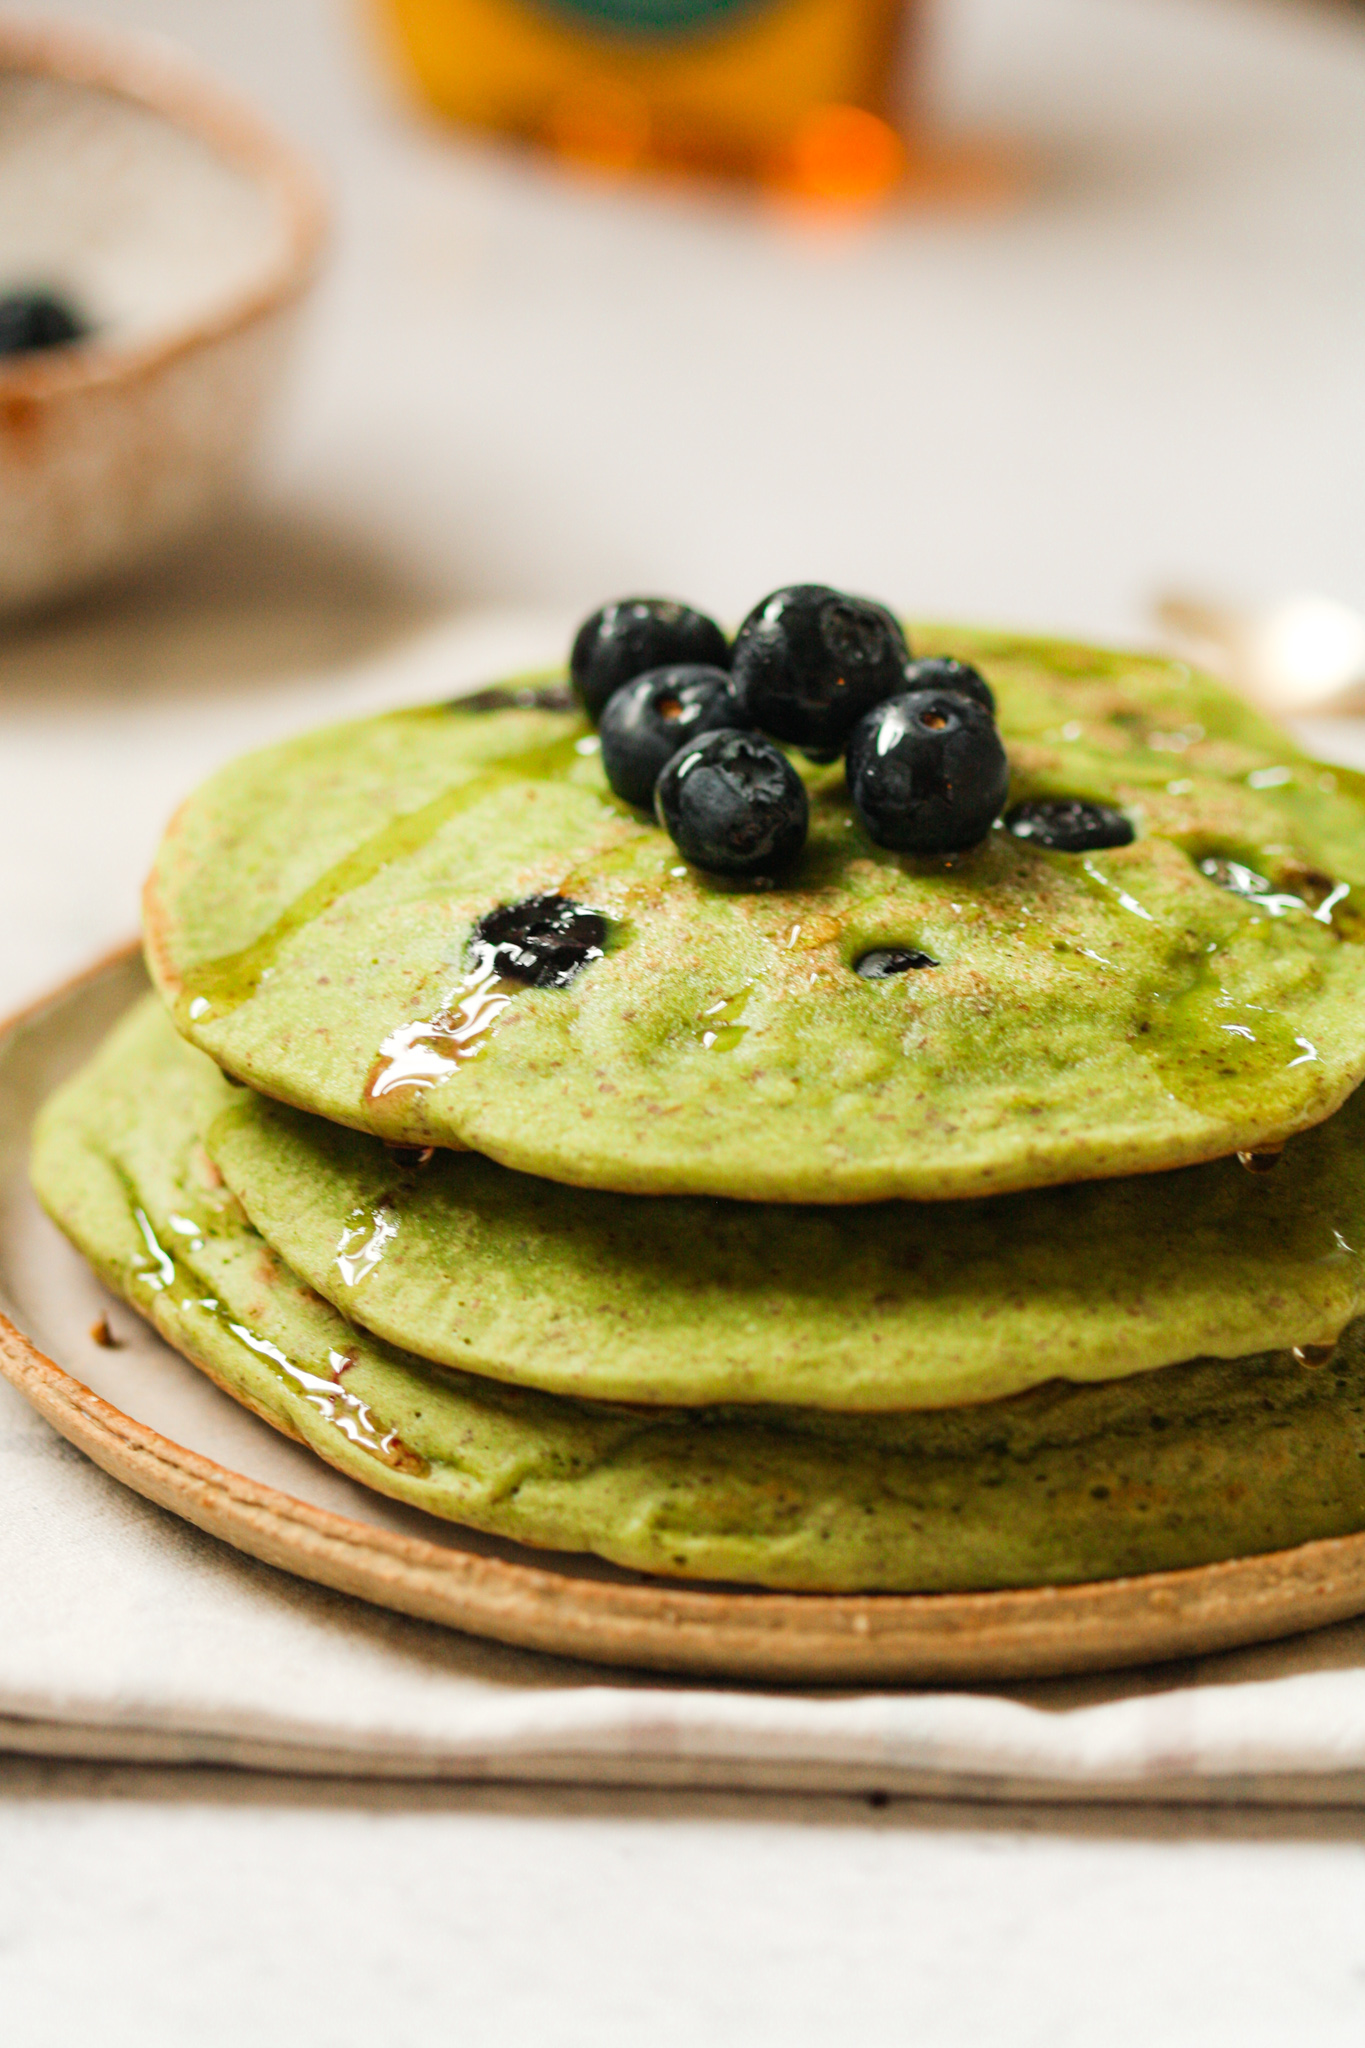 Vegan Matcha & Blueberry Pancakes